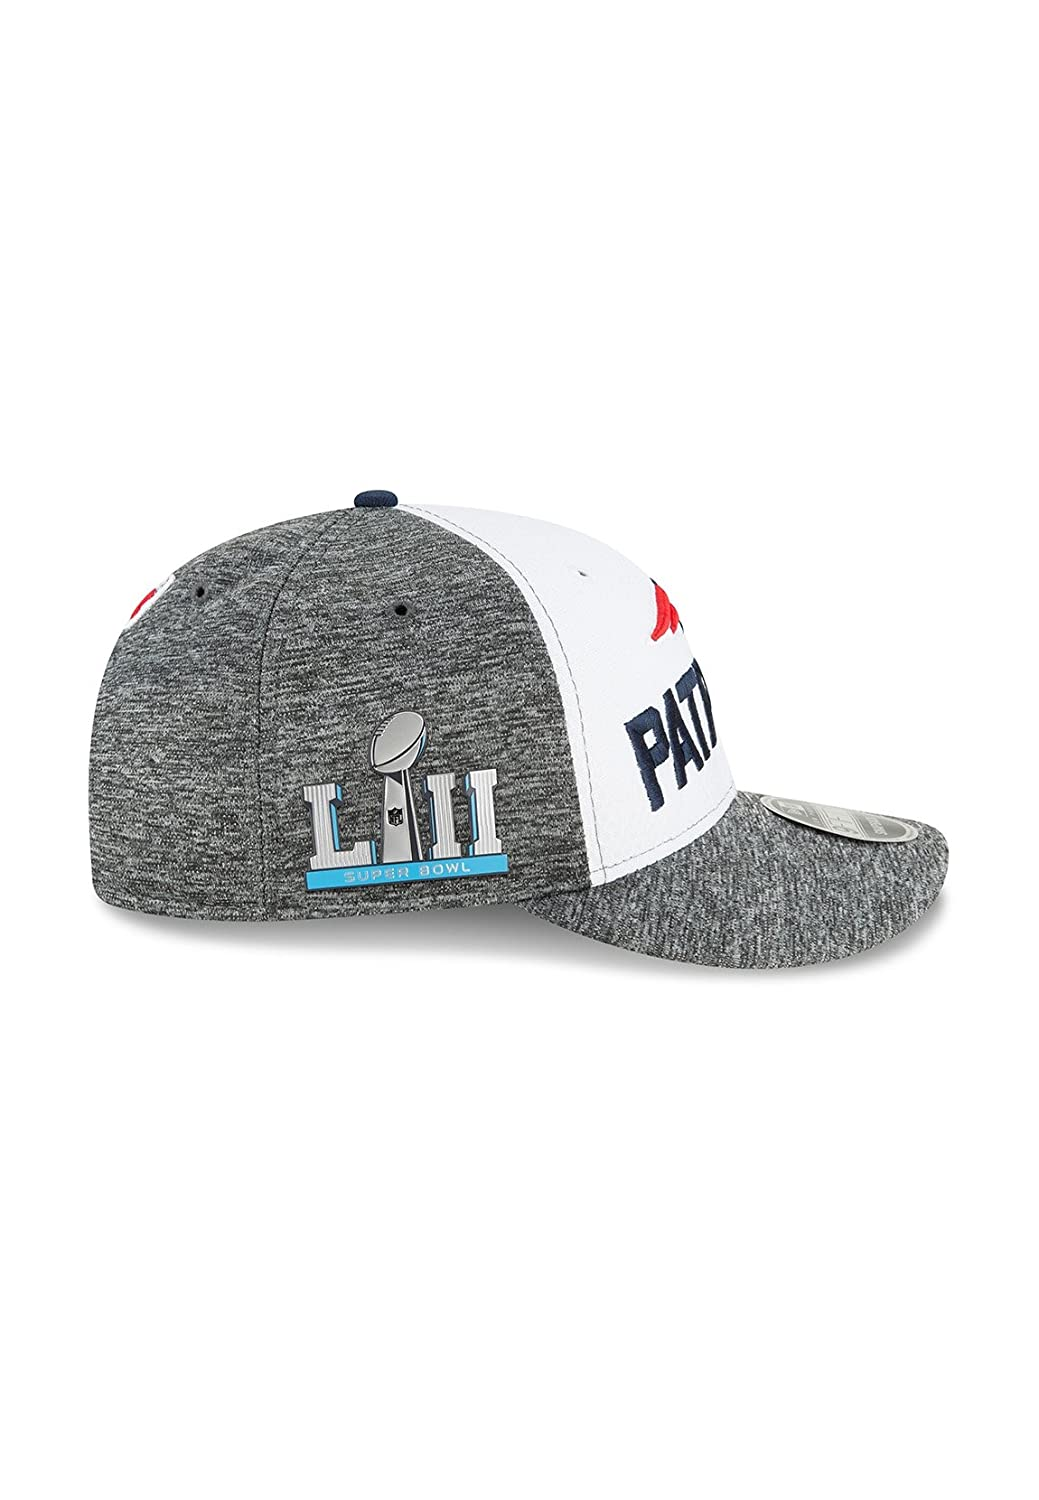 quality design 8c5b2 2cfb2 ... sideline 9fifty snapback adjustable hat 0b3c0 e0b3e  coupon code for  amazon new era new england patriots super bowl lii opening night low profile